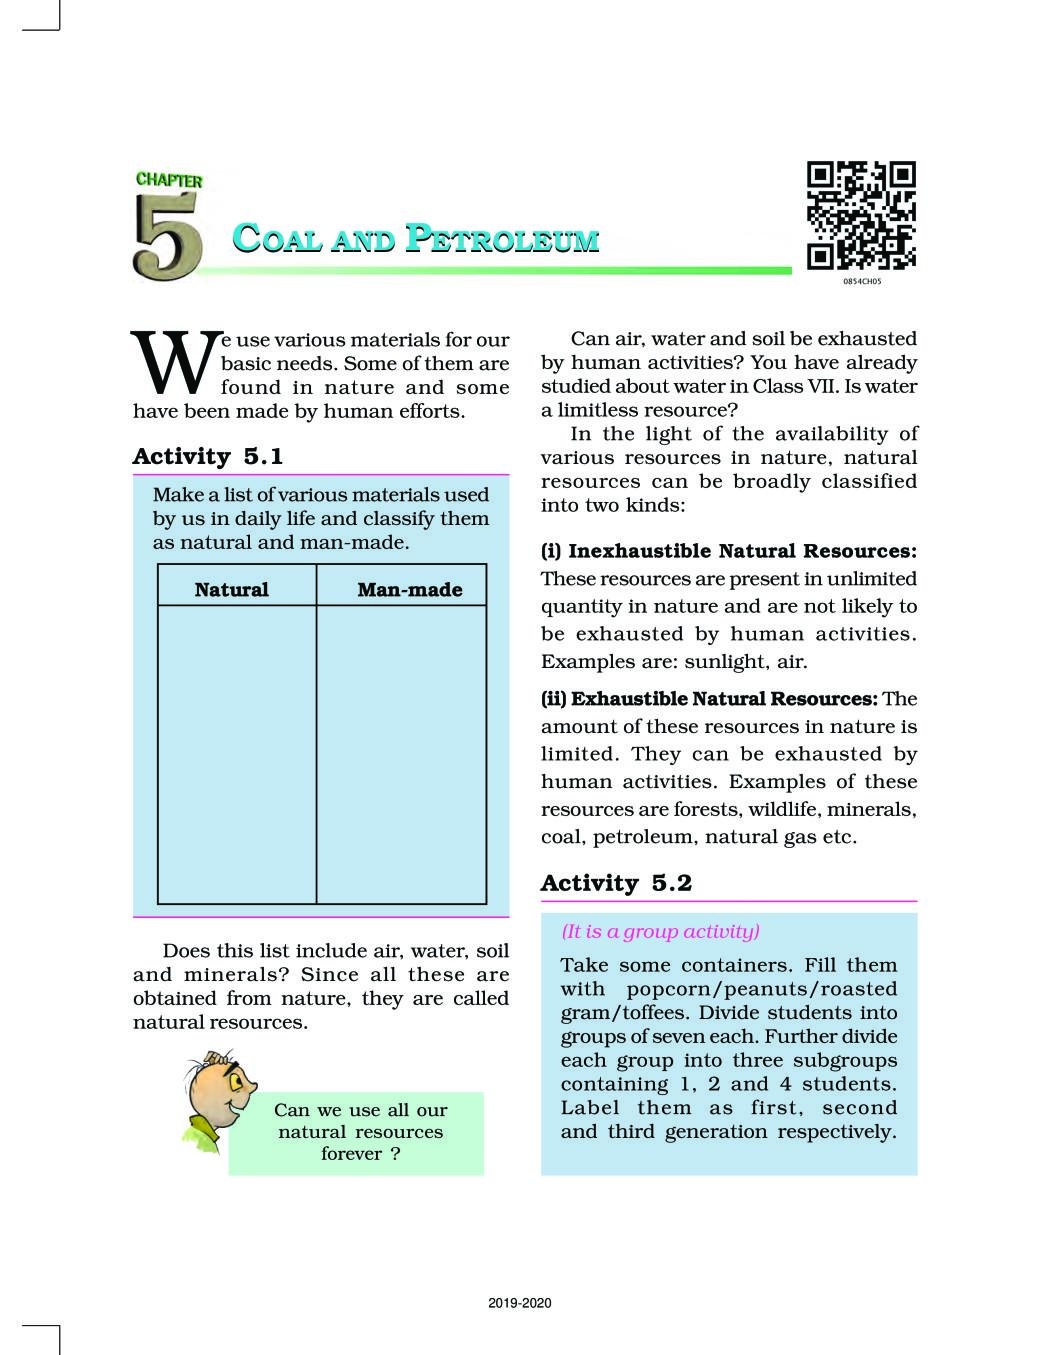 NCERT Book Class 8 Science Chapter 5 Coal and Petroleum